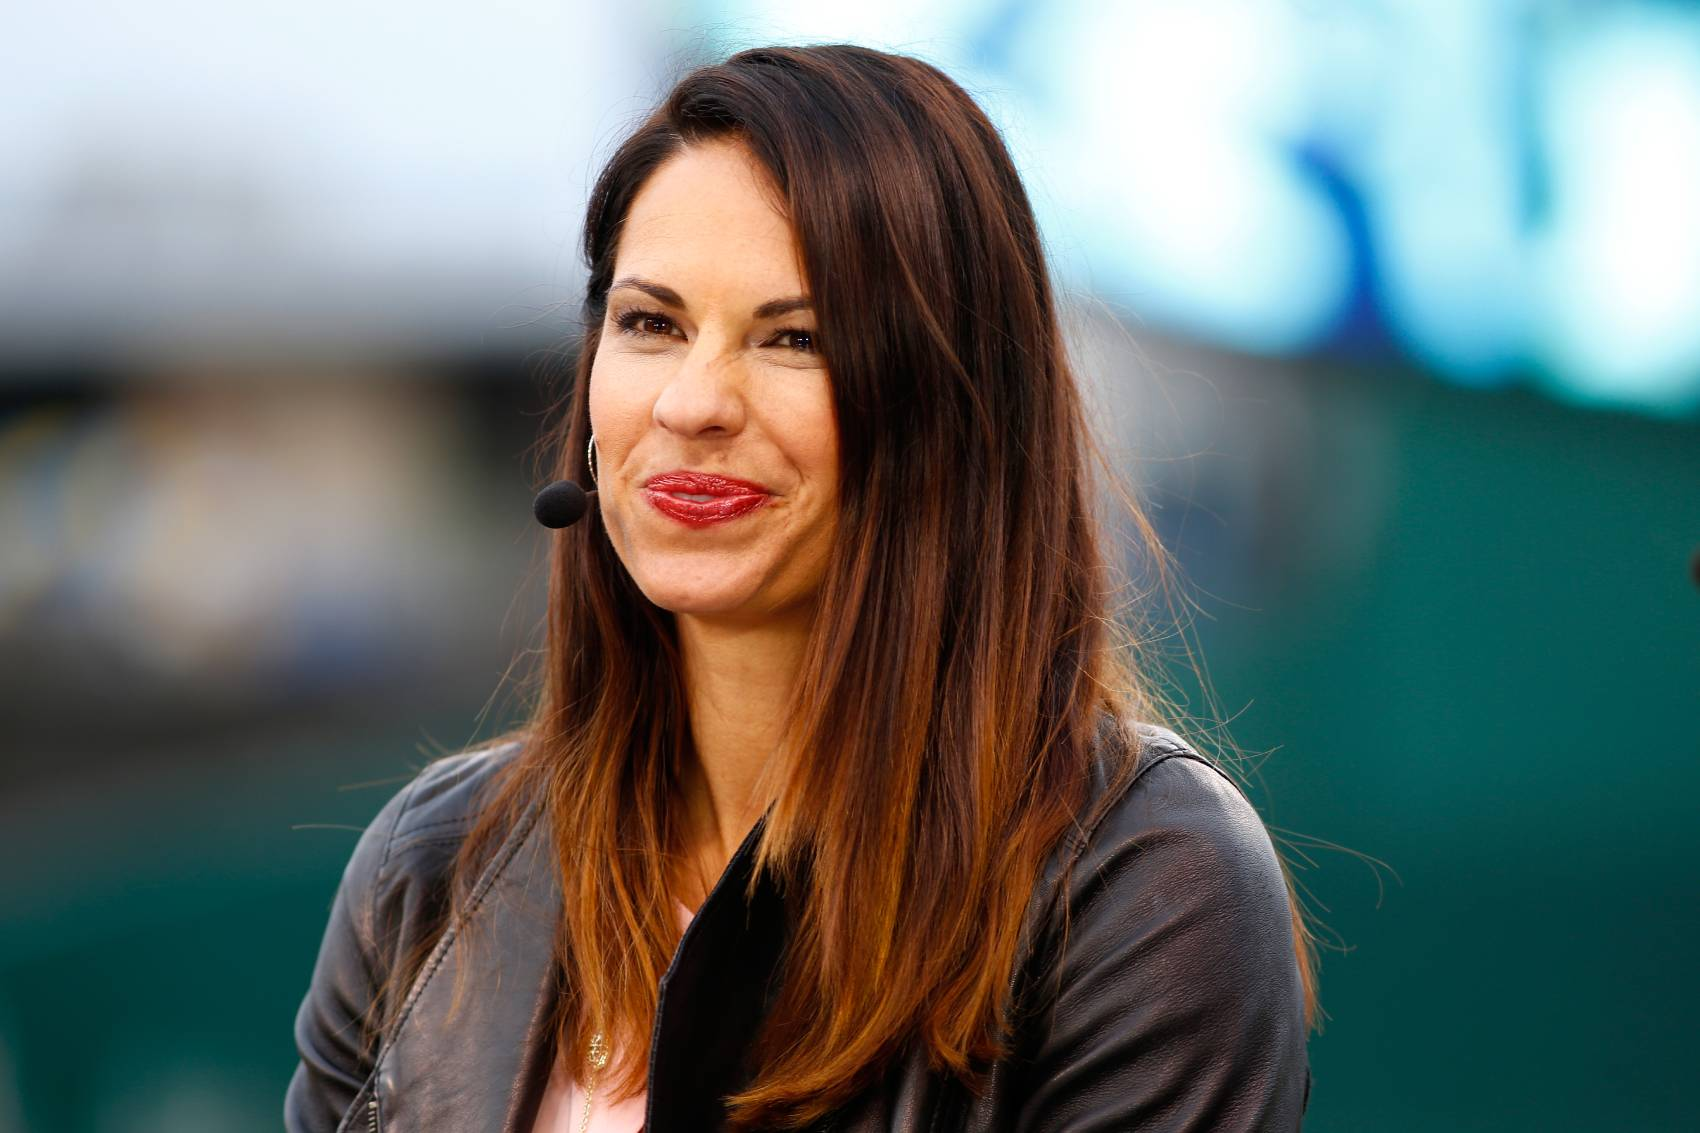 ESPN baseball announcer Jessica Mendoza has received plenty of criticism in recent years.